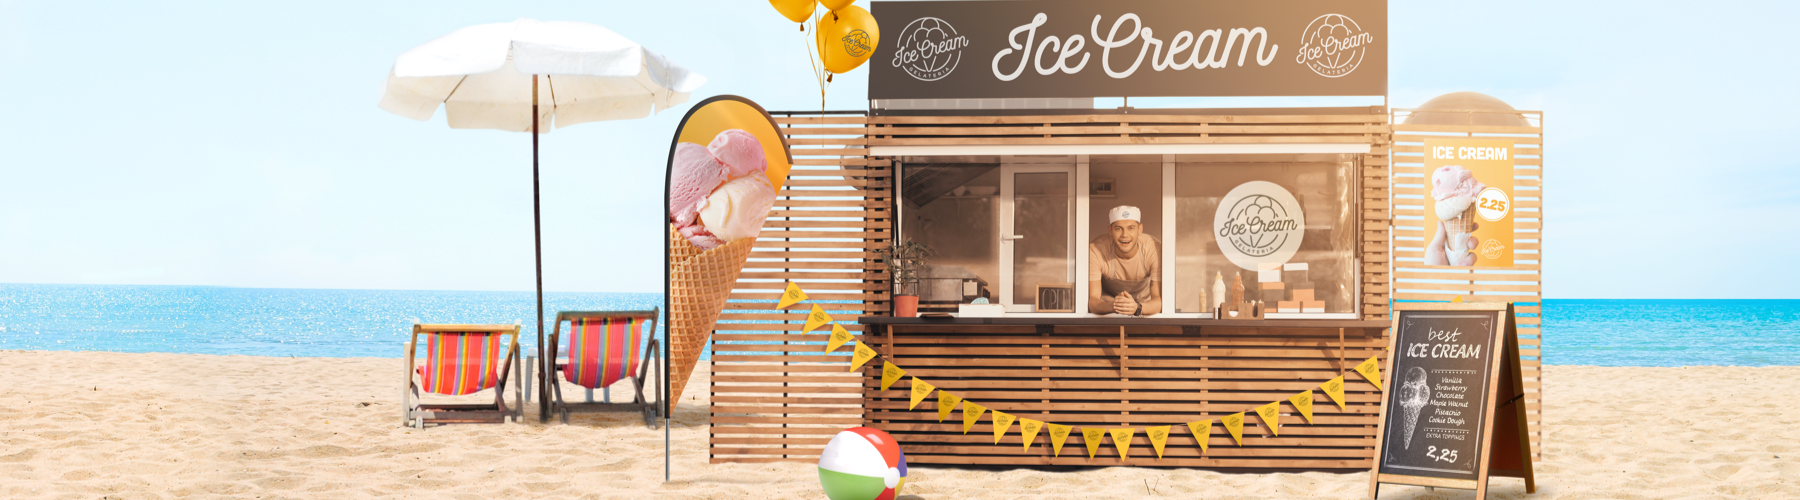 5 Ways to Promote Your Business on the Beach